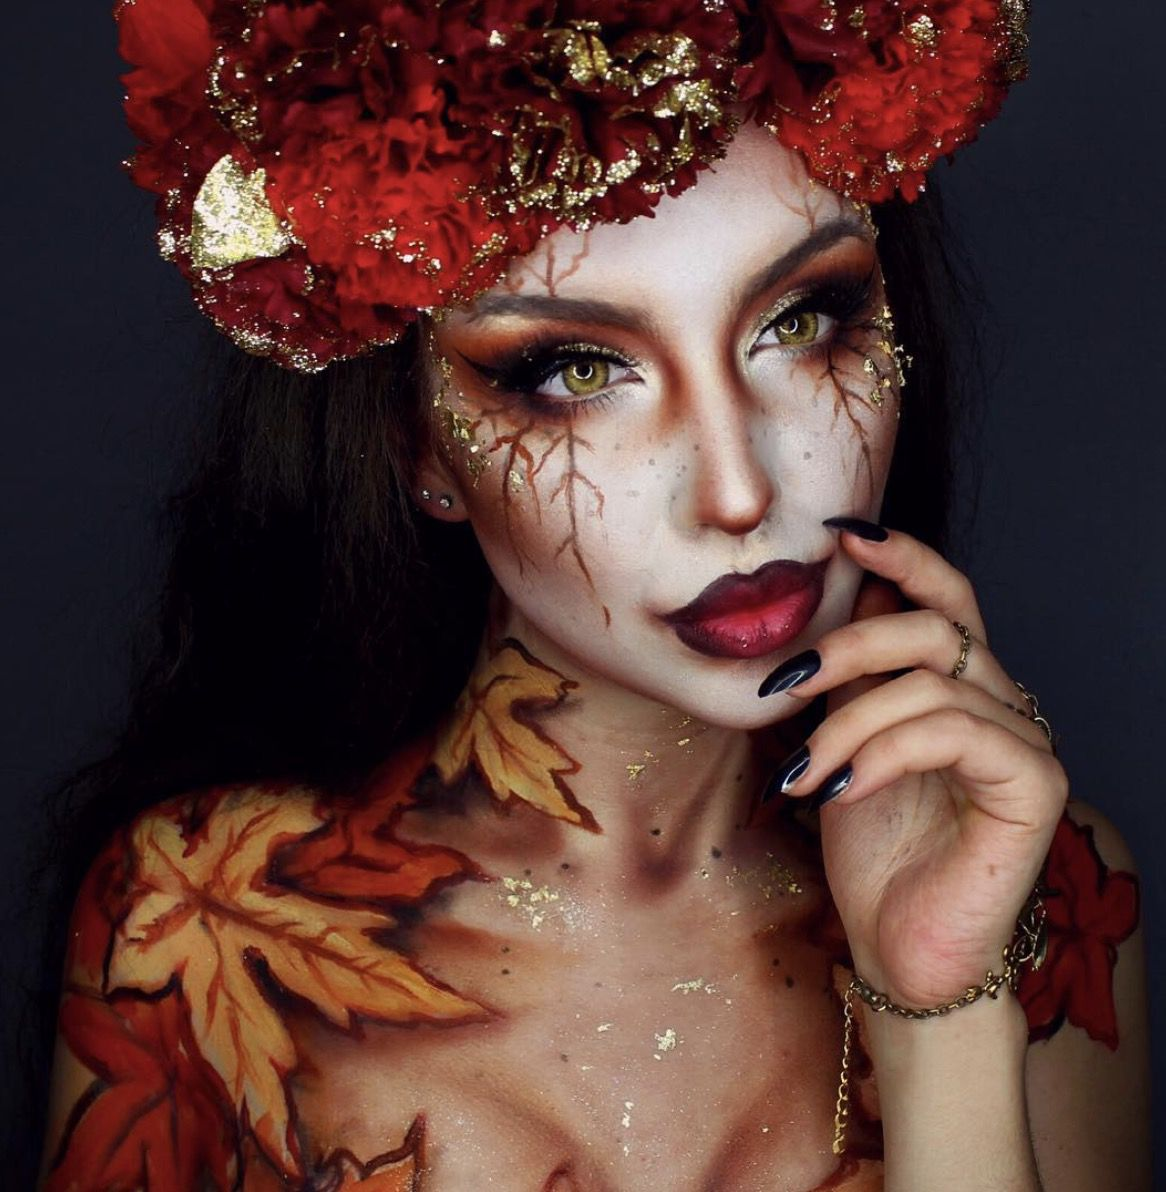 41 Most Jaw-Dropping Halloween Makeup Ideas That Are Still Pretty: Awesome Halloween Makeup - Click though to see more awe inspiring pretty Halloween makeup looks, gorgeous Halloween makeup and Halloween costumes. #halloweenmakeup #halloweenmakeuppretty #halloweencostumes #halloweenmakeupinspo